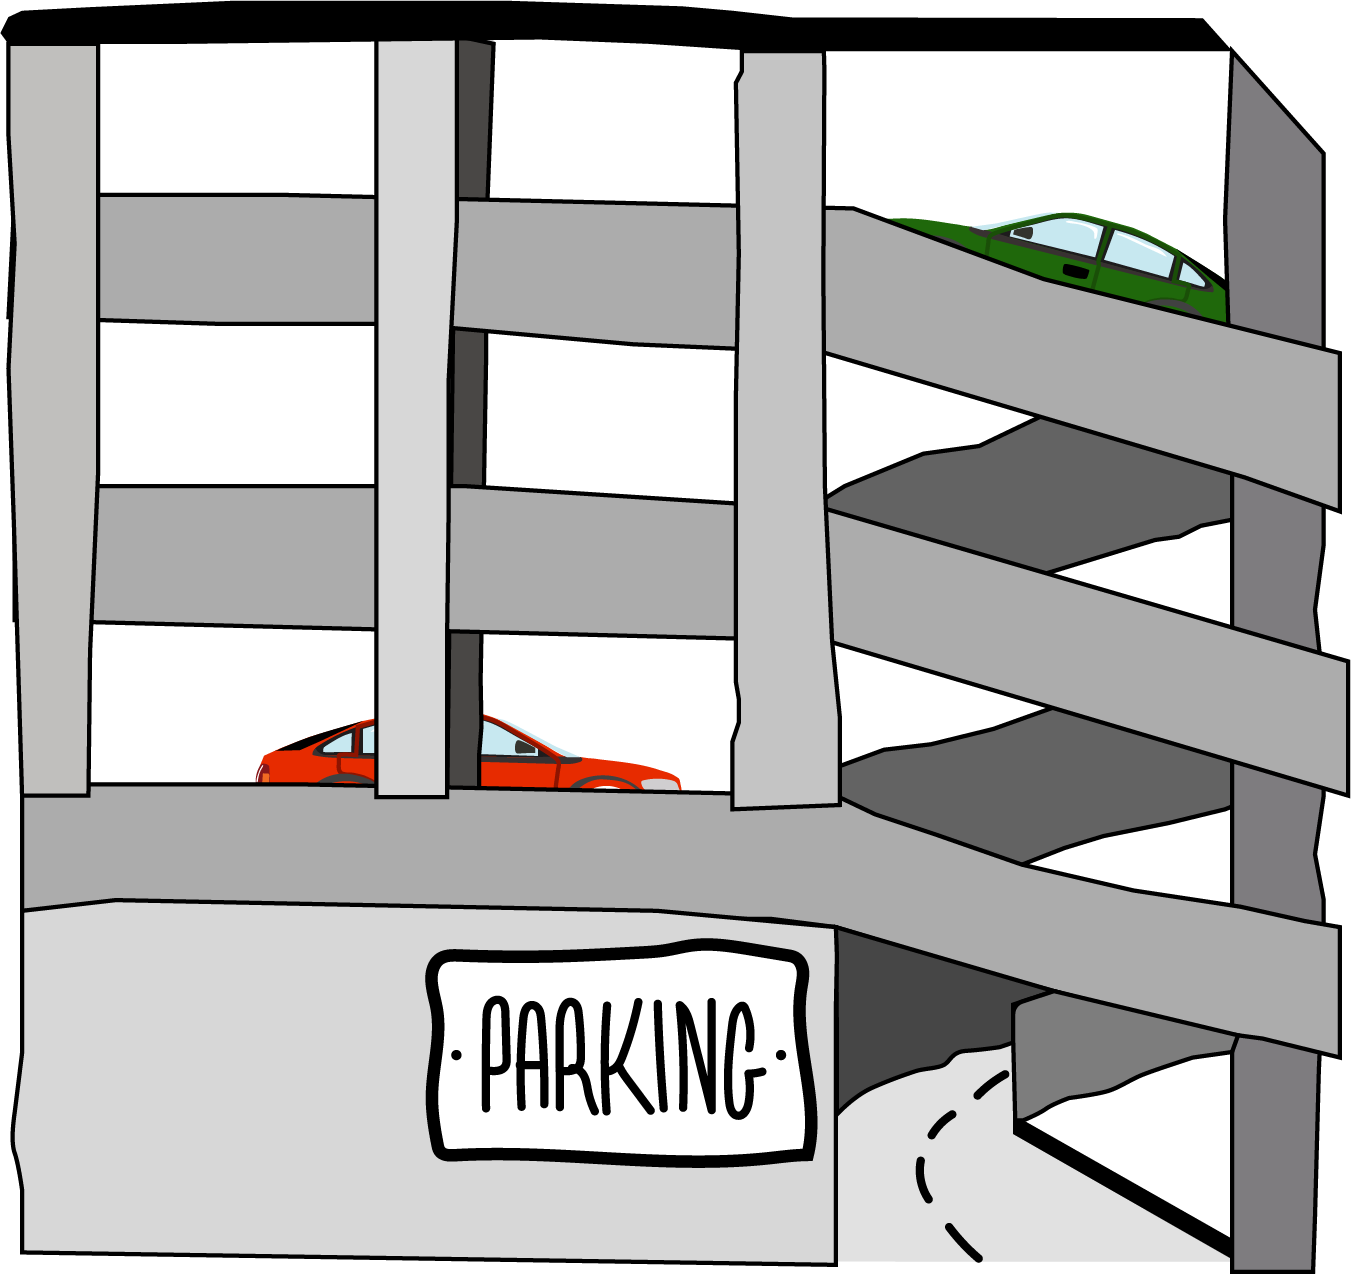 Illustration representing parking in Washington, D.C.